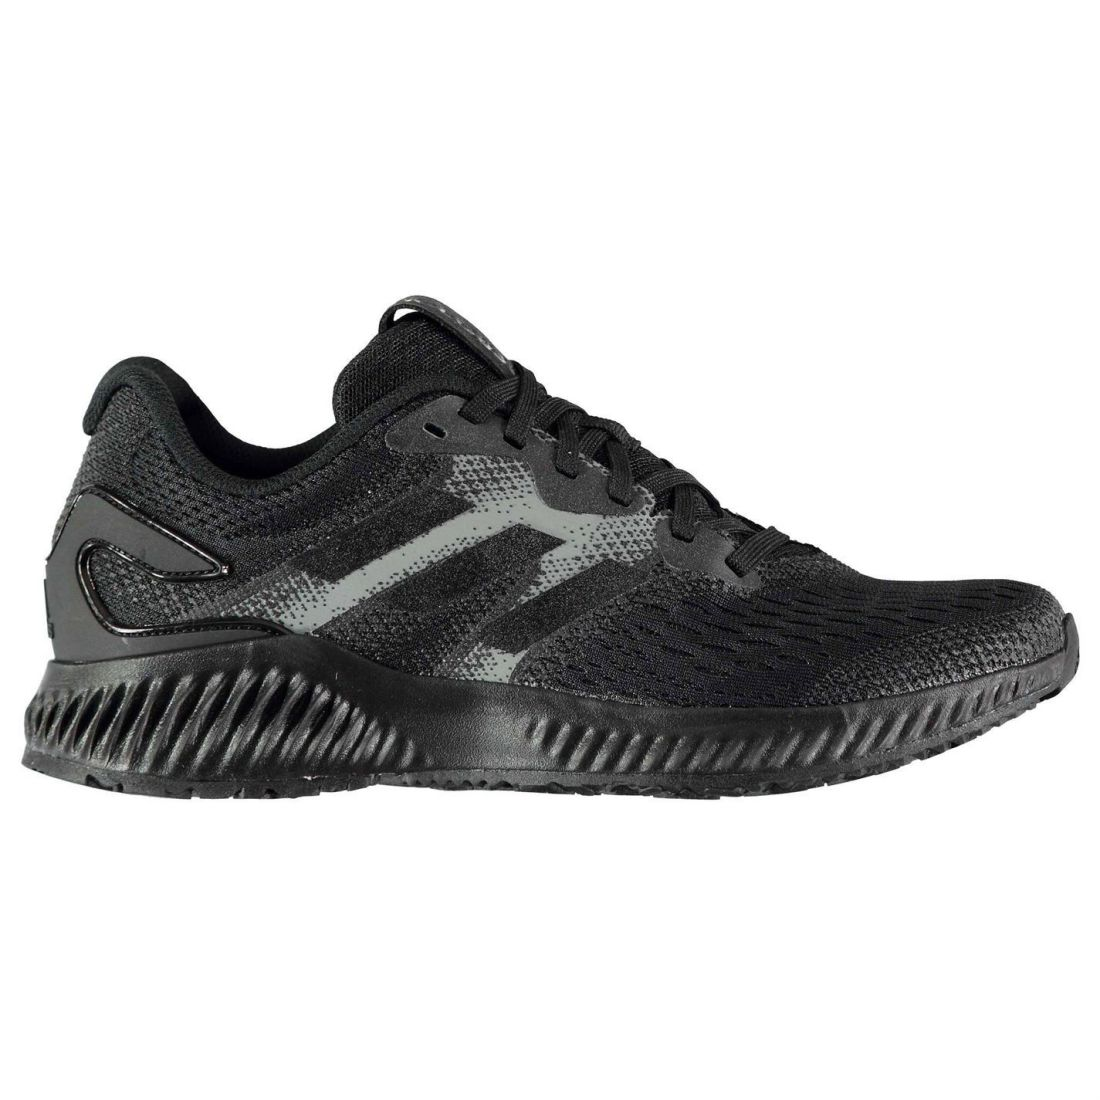 Adidas Aerobounce Running shoes Ladies Road  Laces Fastened Ventilated Padded  2018 store